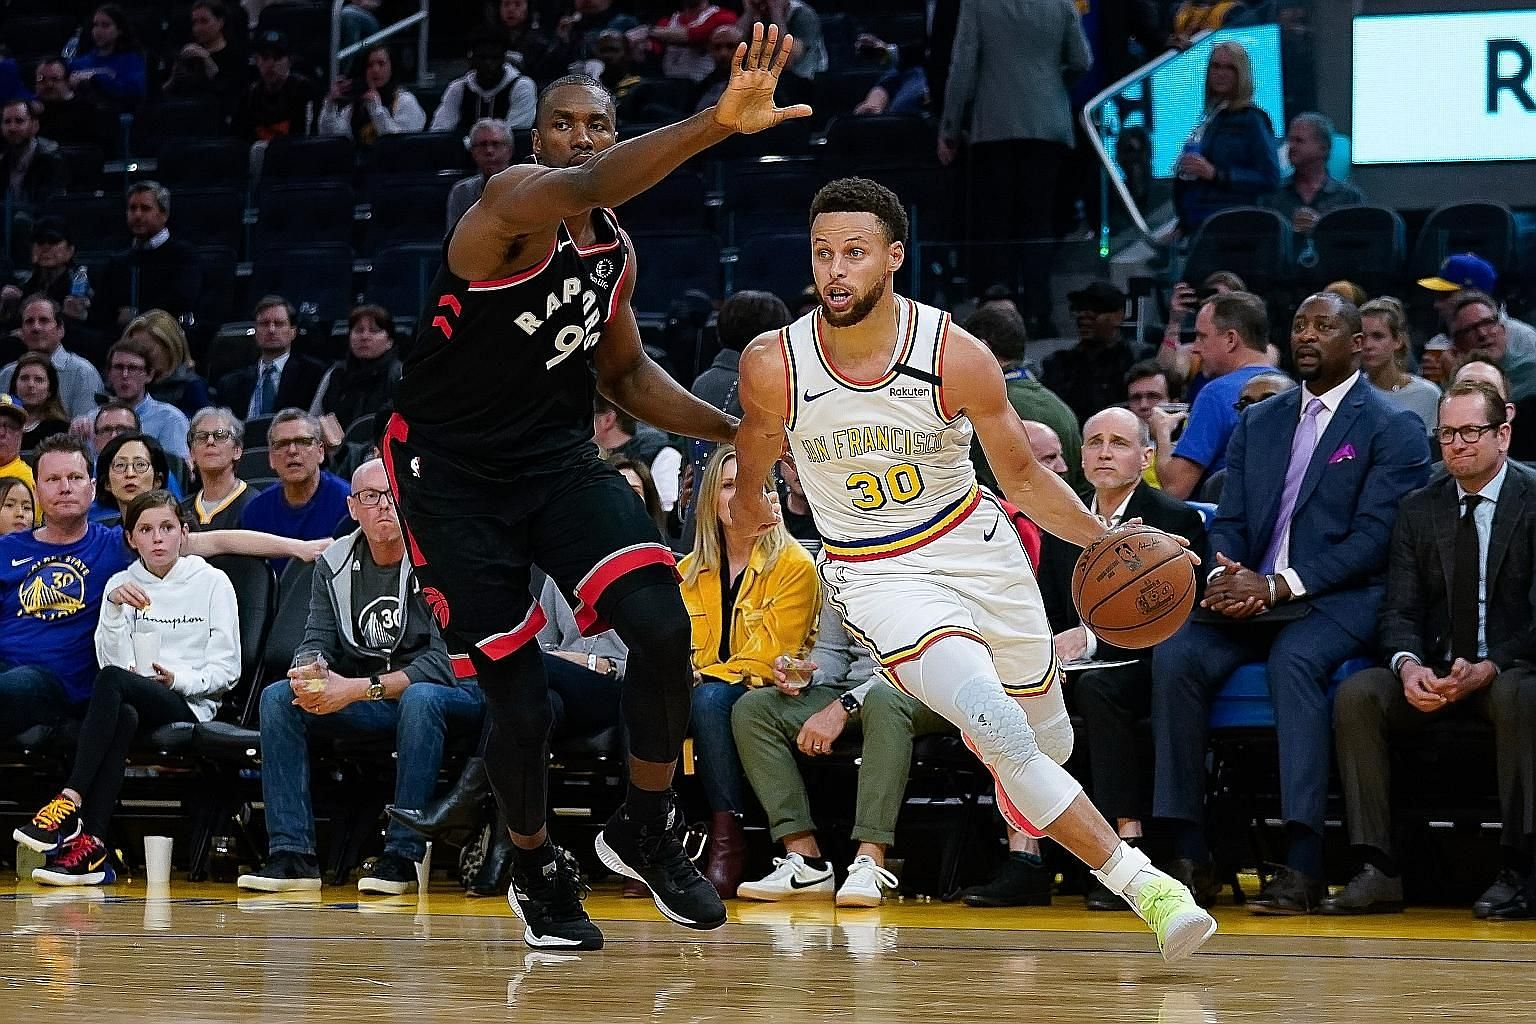 Golden State Warriors guard Stephen Curry (right) driving past Toronto Raptors centre Serge Ibaka on his return to action on Thursday after four months out with a broken hand. But National Basketball Association champions Toronto, led by Norm Powell'